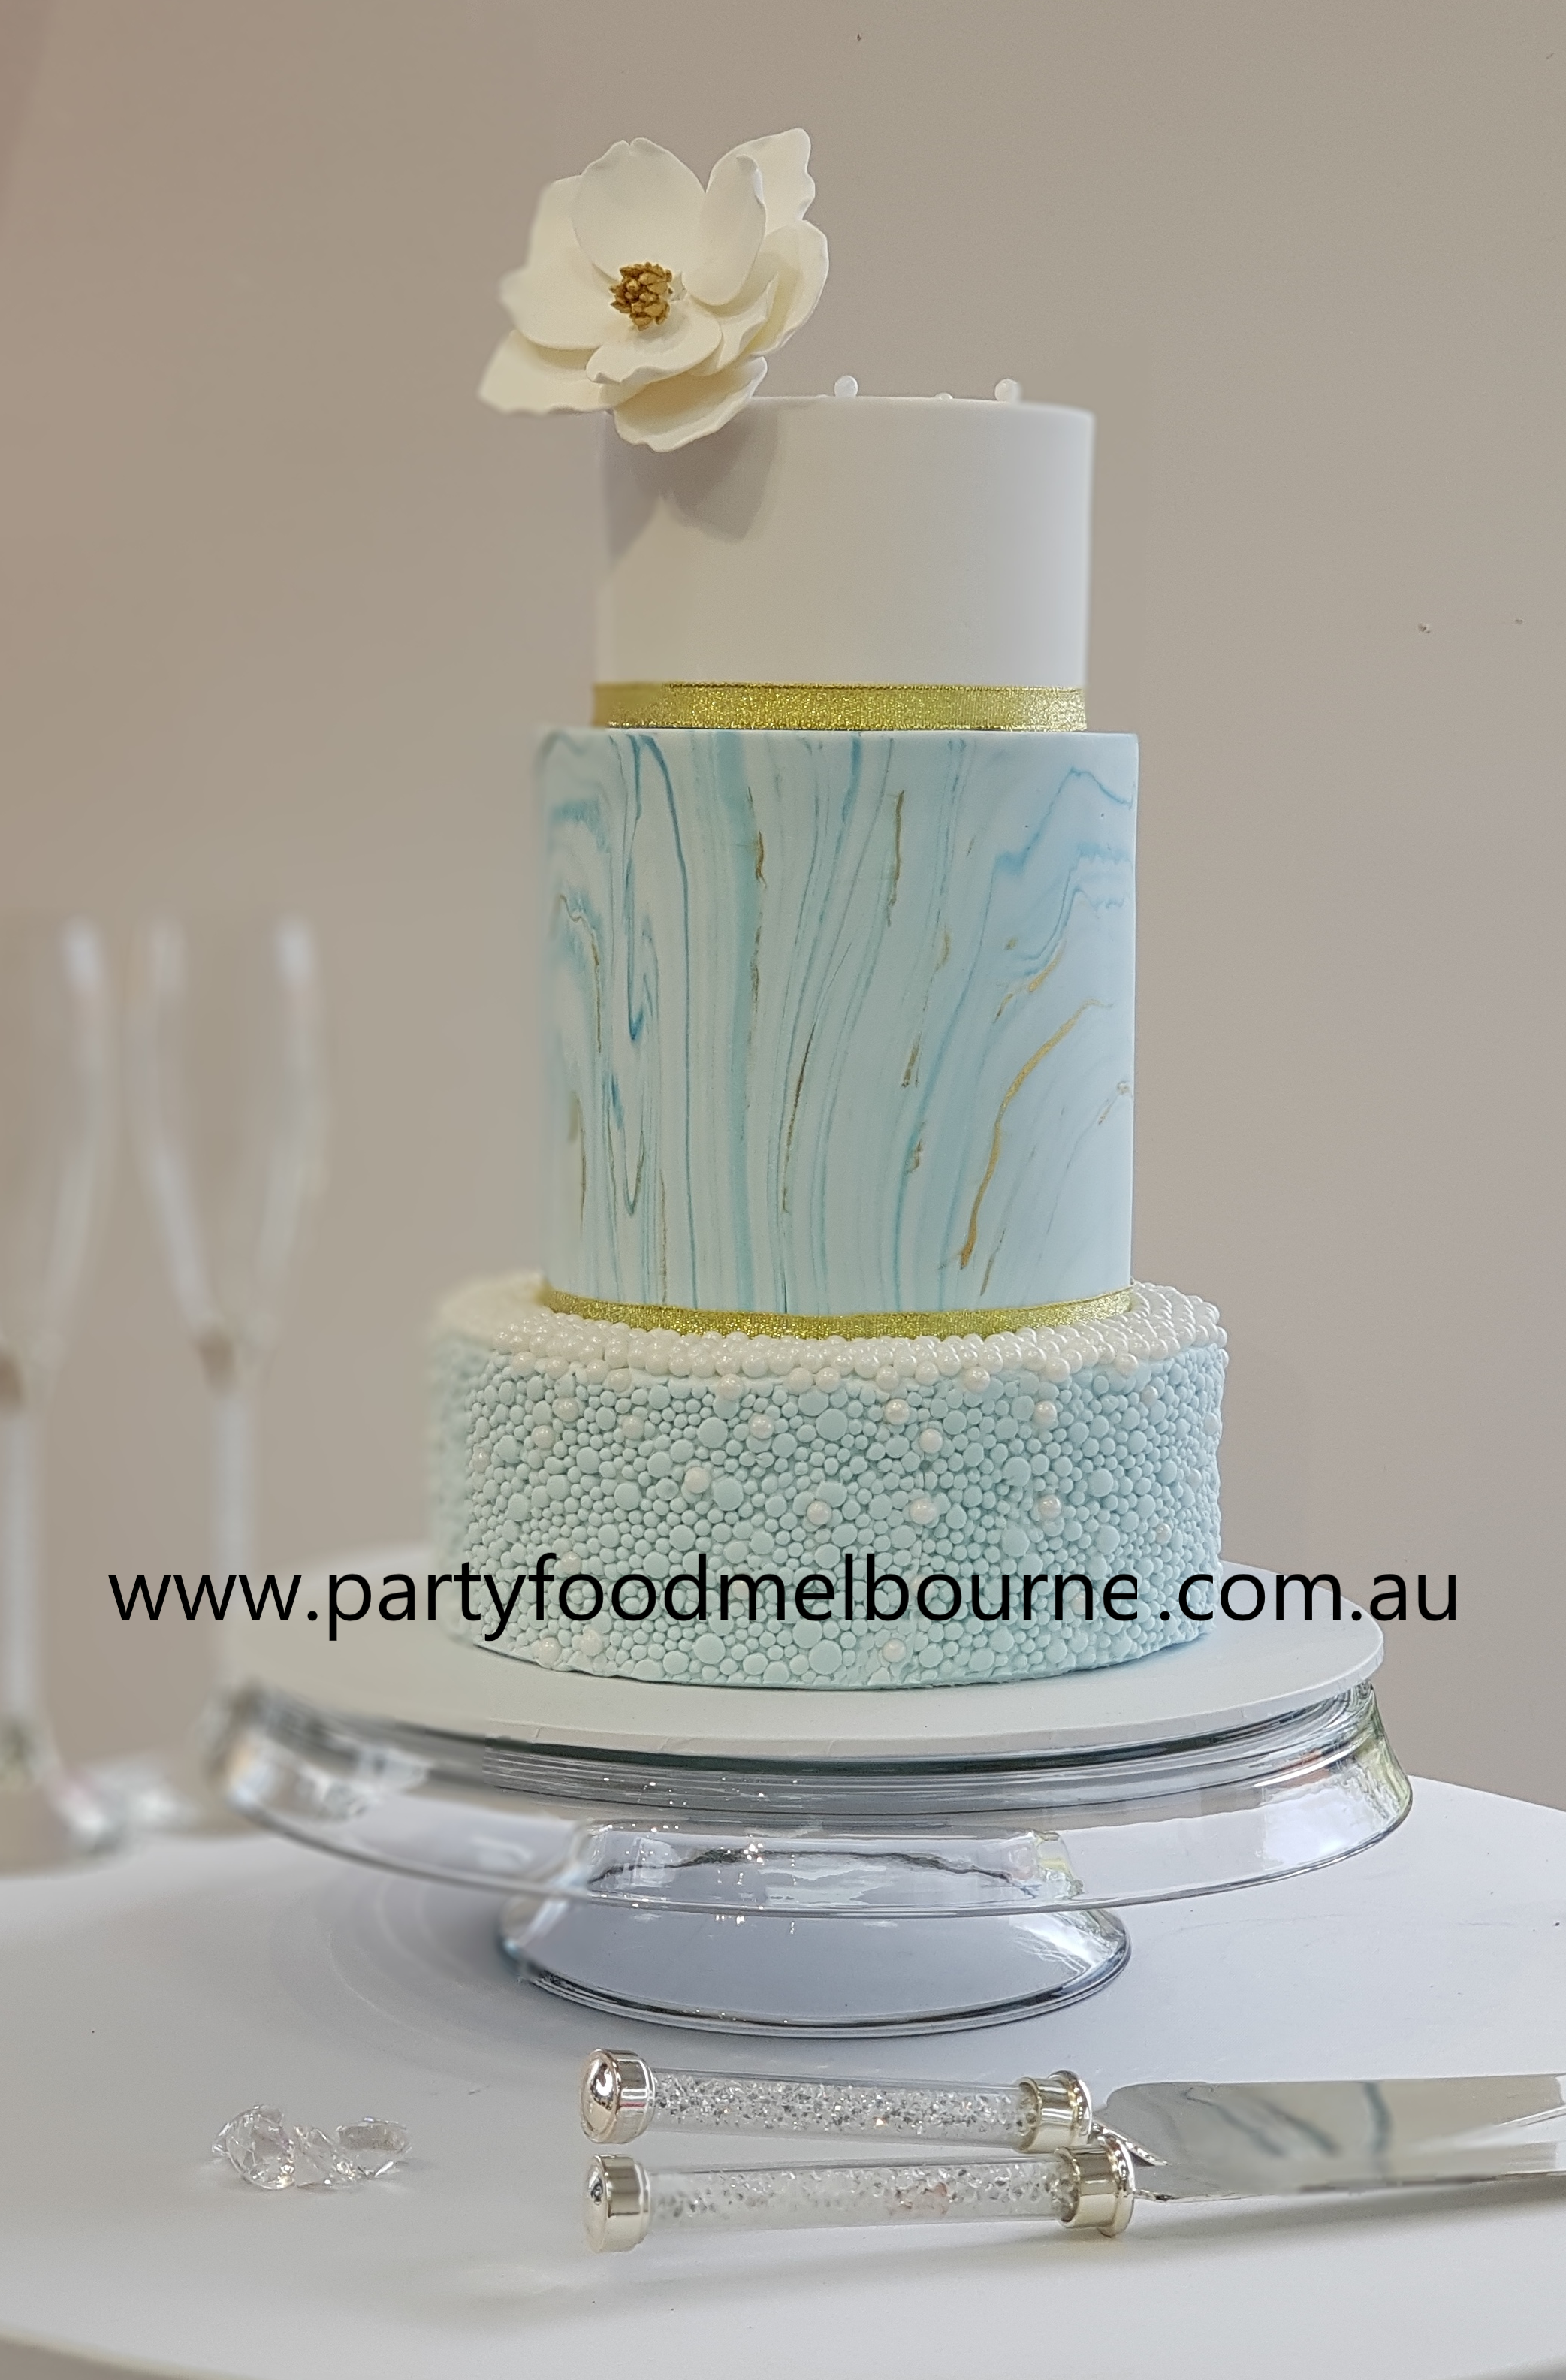 Catering Services Birthday Cakes Melbourne Tiffany Cakes